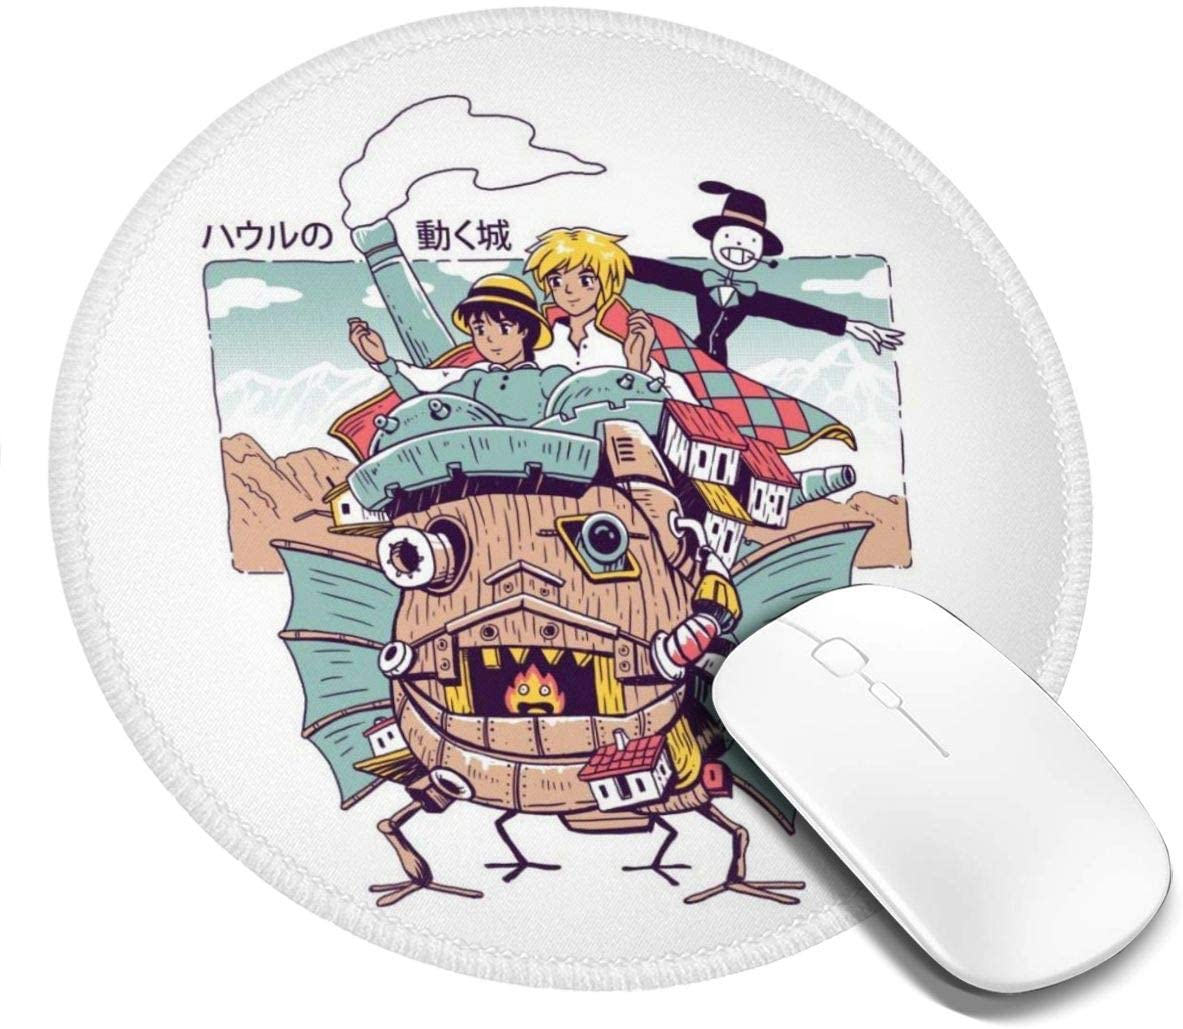 Shonen Magic Customized Designs Non-Slip Rubber Base Gaming Mouse Pads for Mac,7.9x7.9 in, Pc, Computers. Ideal for Working Or Game